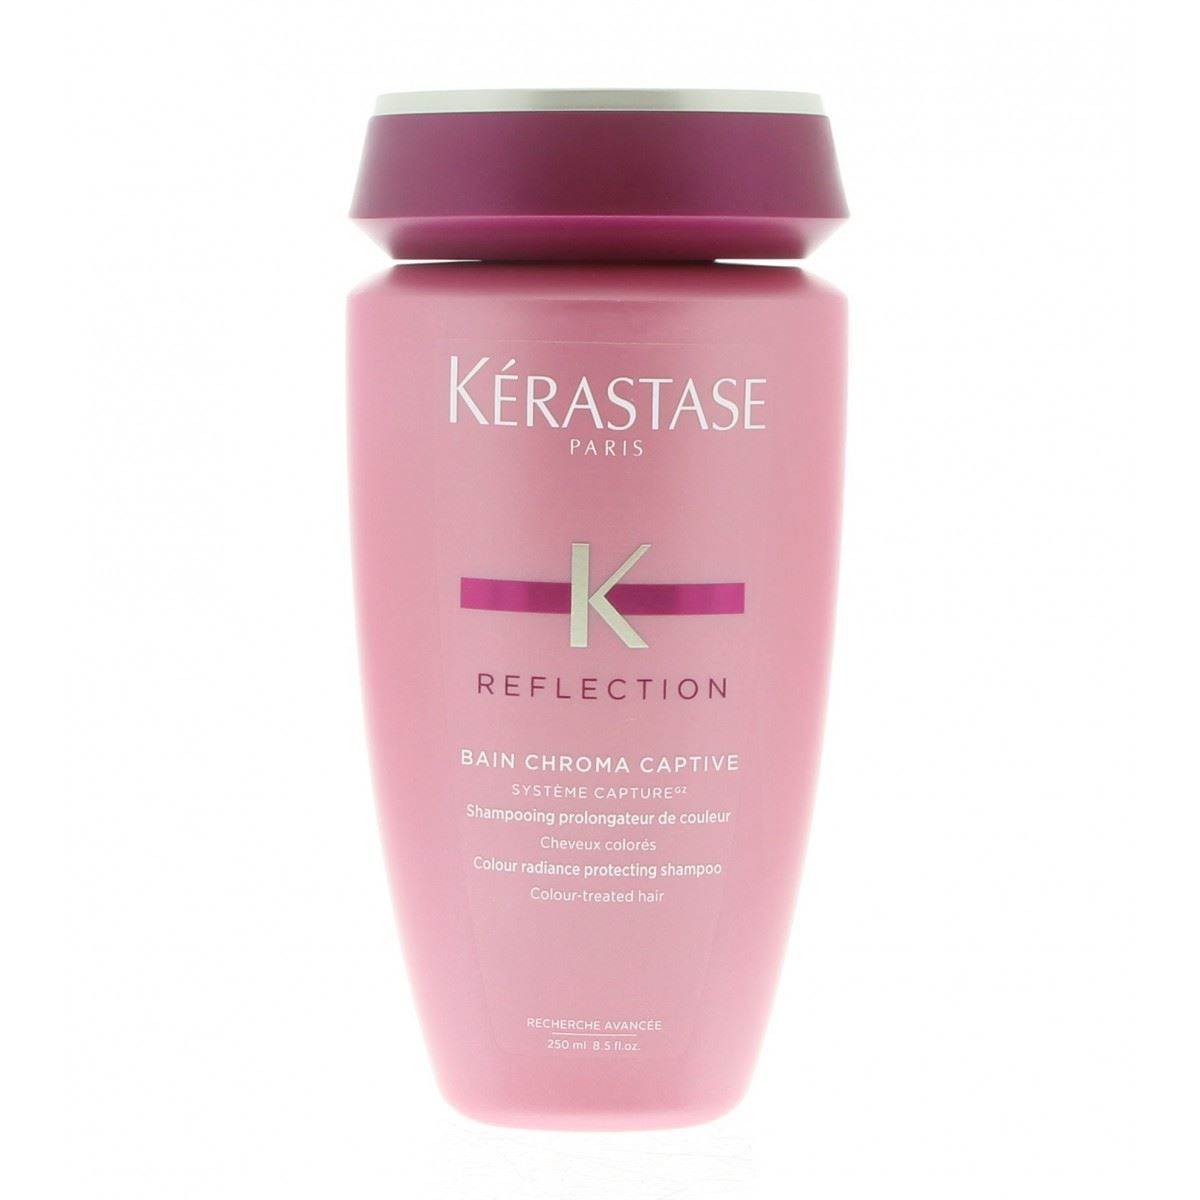 Kerastase reflection bain chroma captive shampoo 250 ml for Kerastase reflection bain miroir 1 shampoo